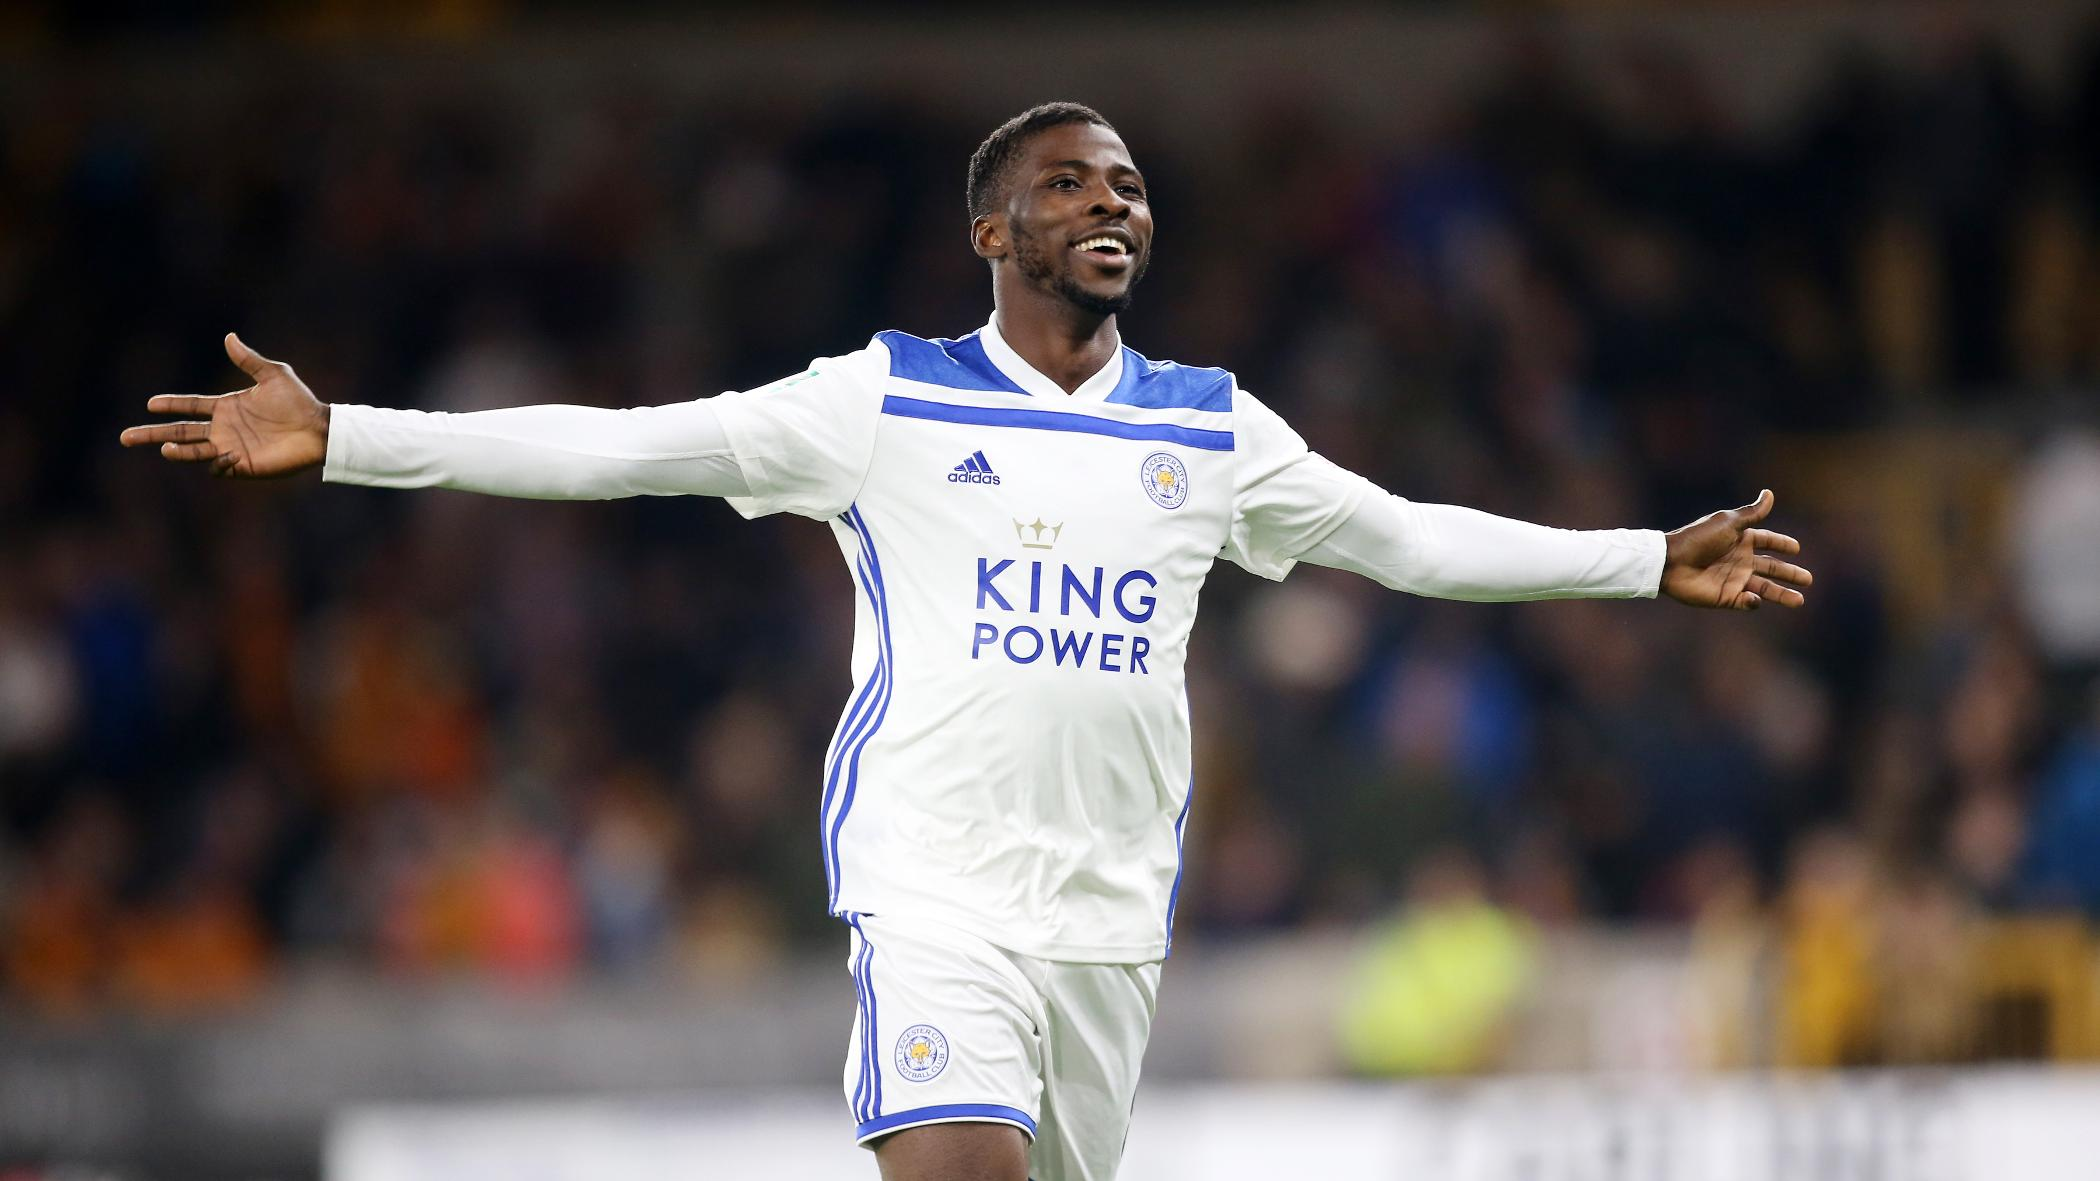 Carabao Cup: Iheanacho Celebrates Leicester Win Vs Wolves, Thanks Foxes' Fans